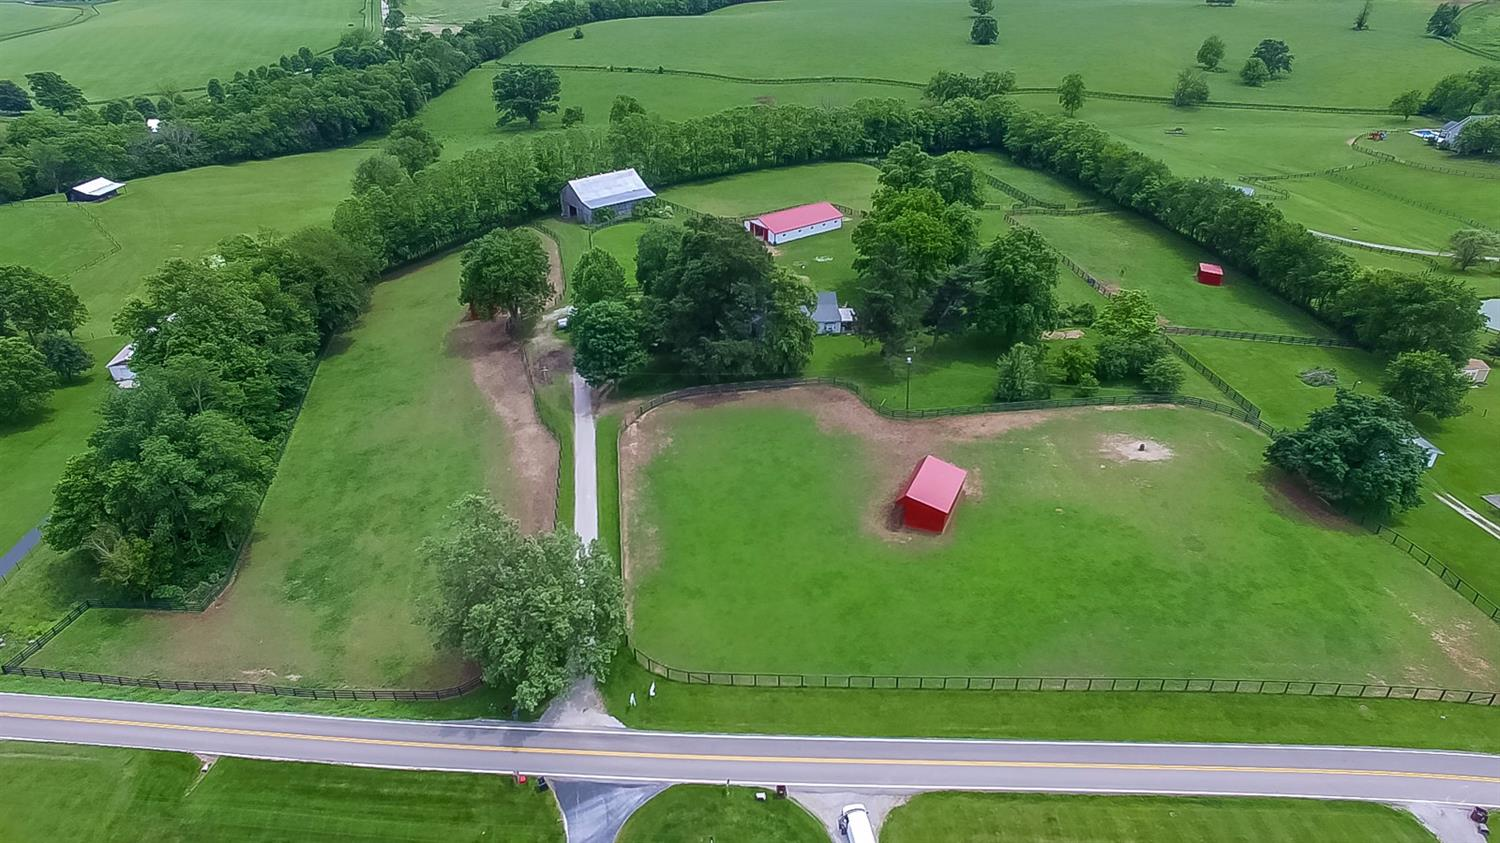 211 Shady Lane, Midway, KY 40347